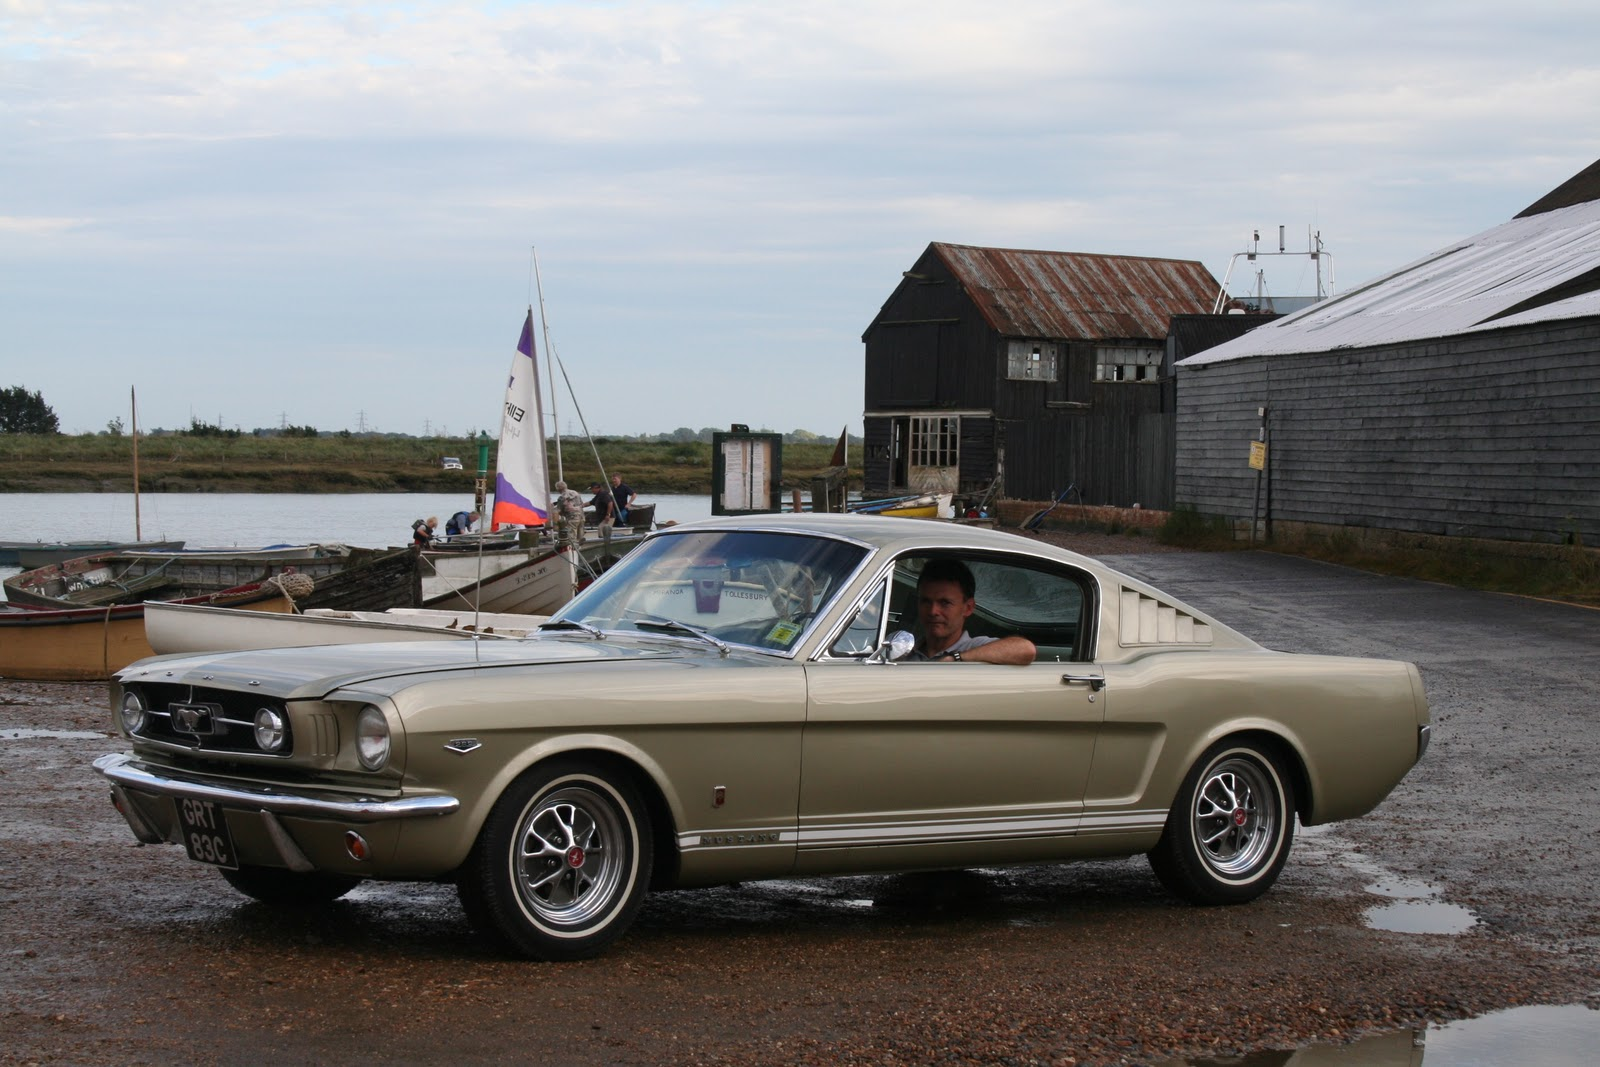 hill shipping www hillshipping com 1965 ford mustang. Black Bedroom Furniture Sets. Home Design Ideas